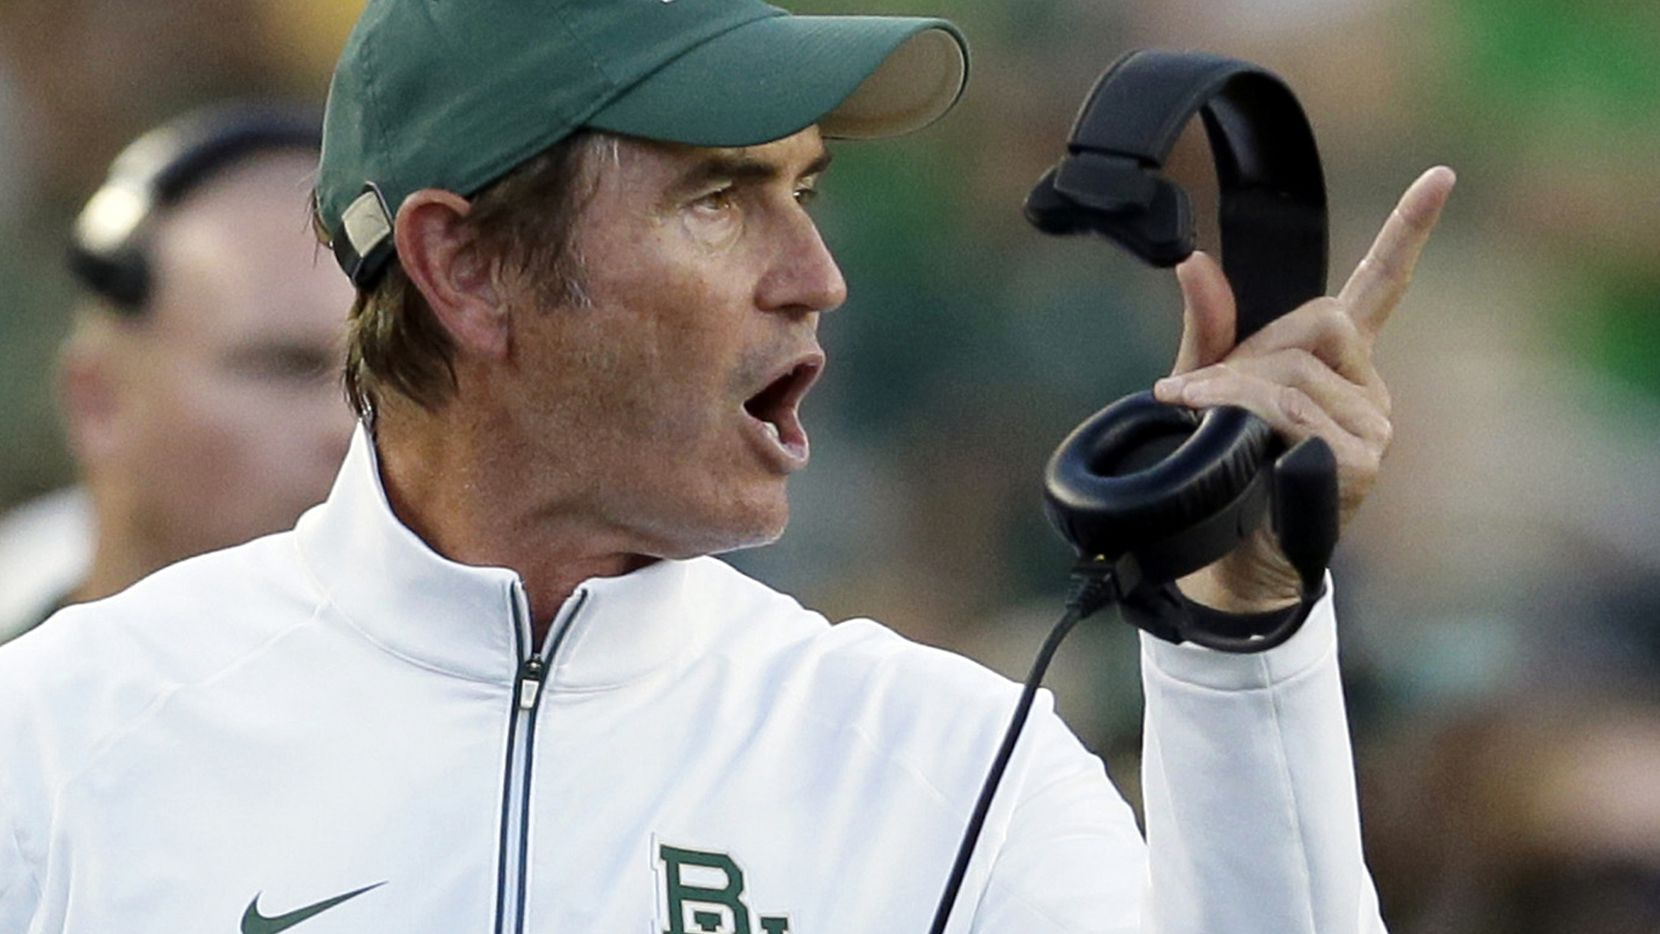 FILE - In this Sept. 12, 2015, file photo, Baylor coach Art Briles yells from the sideline during the first half of an NCAA college football game against Lamar in Waco, Texas. Briles is accusing Baylor of wrongful termination and indicating he has no interest in settling a federal lawsuit filed against him and the university by a woman who was raped by a football player, according to a motion filed Thursday, June 16, 2016, as part of the lawsuit. Briles says he wants a judge to assign him new attorneys and his personal legal team is demanding that Baylor turn over all its files in the sexual assault scandal that has gripped the Baptist university for months. (AP Photo/LM Otero, File